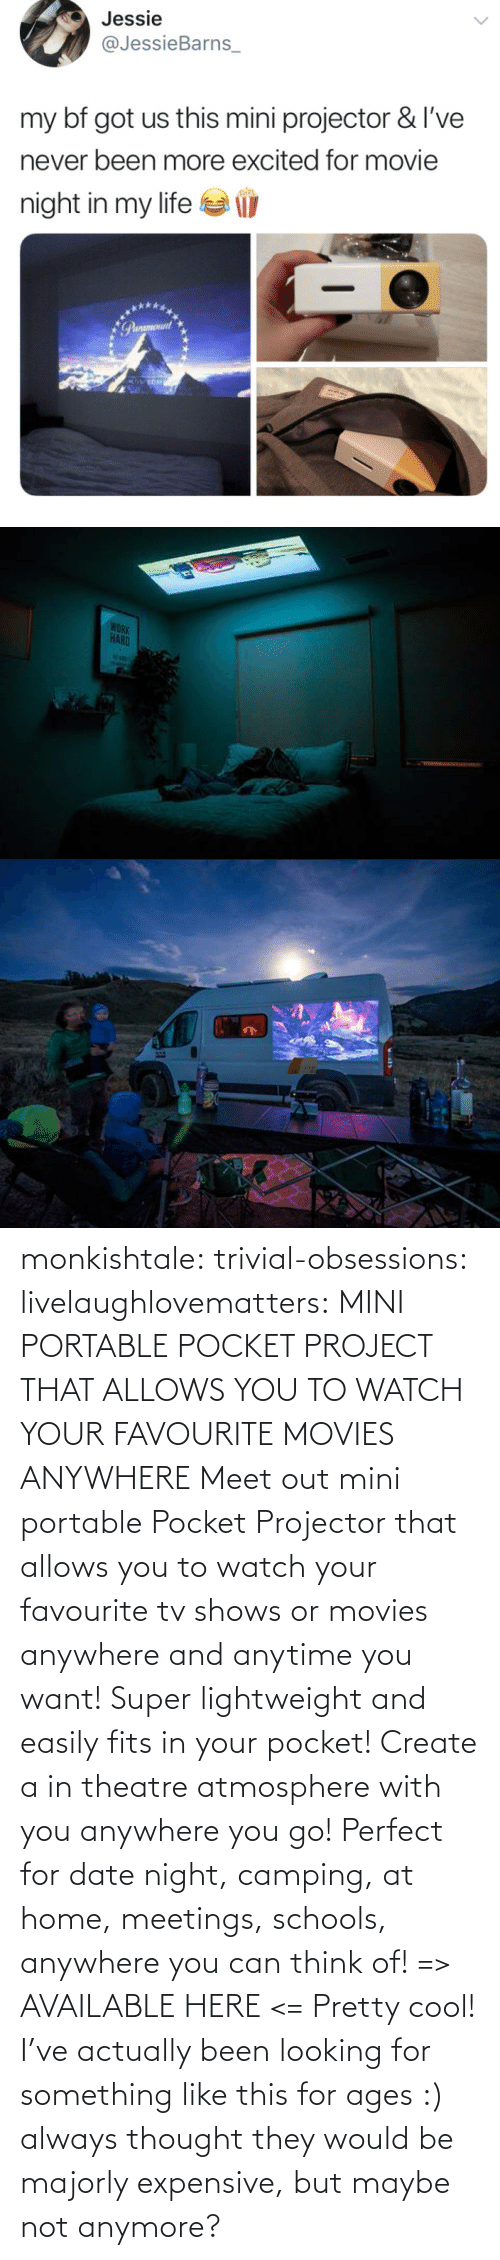 Theatre: monkishtale: trivial-obsessions:   livelaughlovematters:   MINI PORTABLE POCKET PROJECT THAT ALLOWS YOU TO WATCH YOUR FAVOURITE MOVIES ANYWHERE Meet out mini portable Pocket Projector that allows you to watch your favourite tv shows or movies anywhere and anytime you want! Super lightweight and easily fits in your pocket! Create a in theatre atmosphere with you anywhere you go! Perfect for date night, camping, at home, meetings, schools, anywhere you can think of! => AVAILABLE HERE <=    Pretty cool!    I've actually been looking for something like this for ages :) always thought they would be majorly expensive, but maybe not anymore?